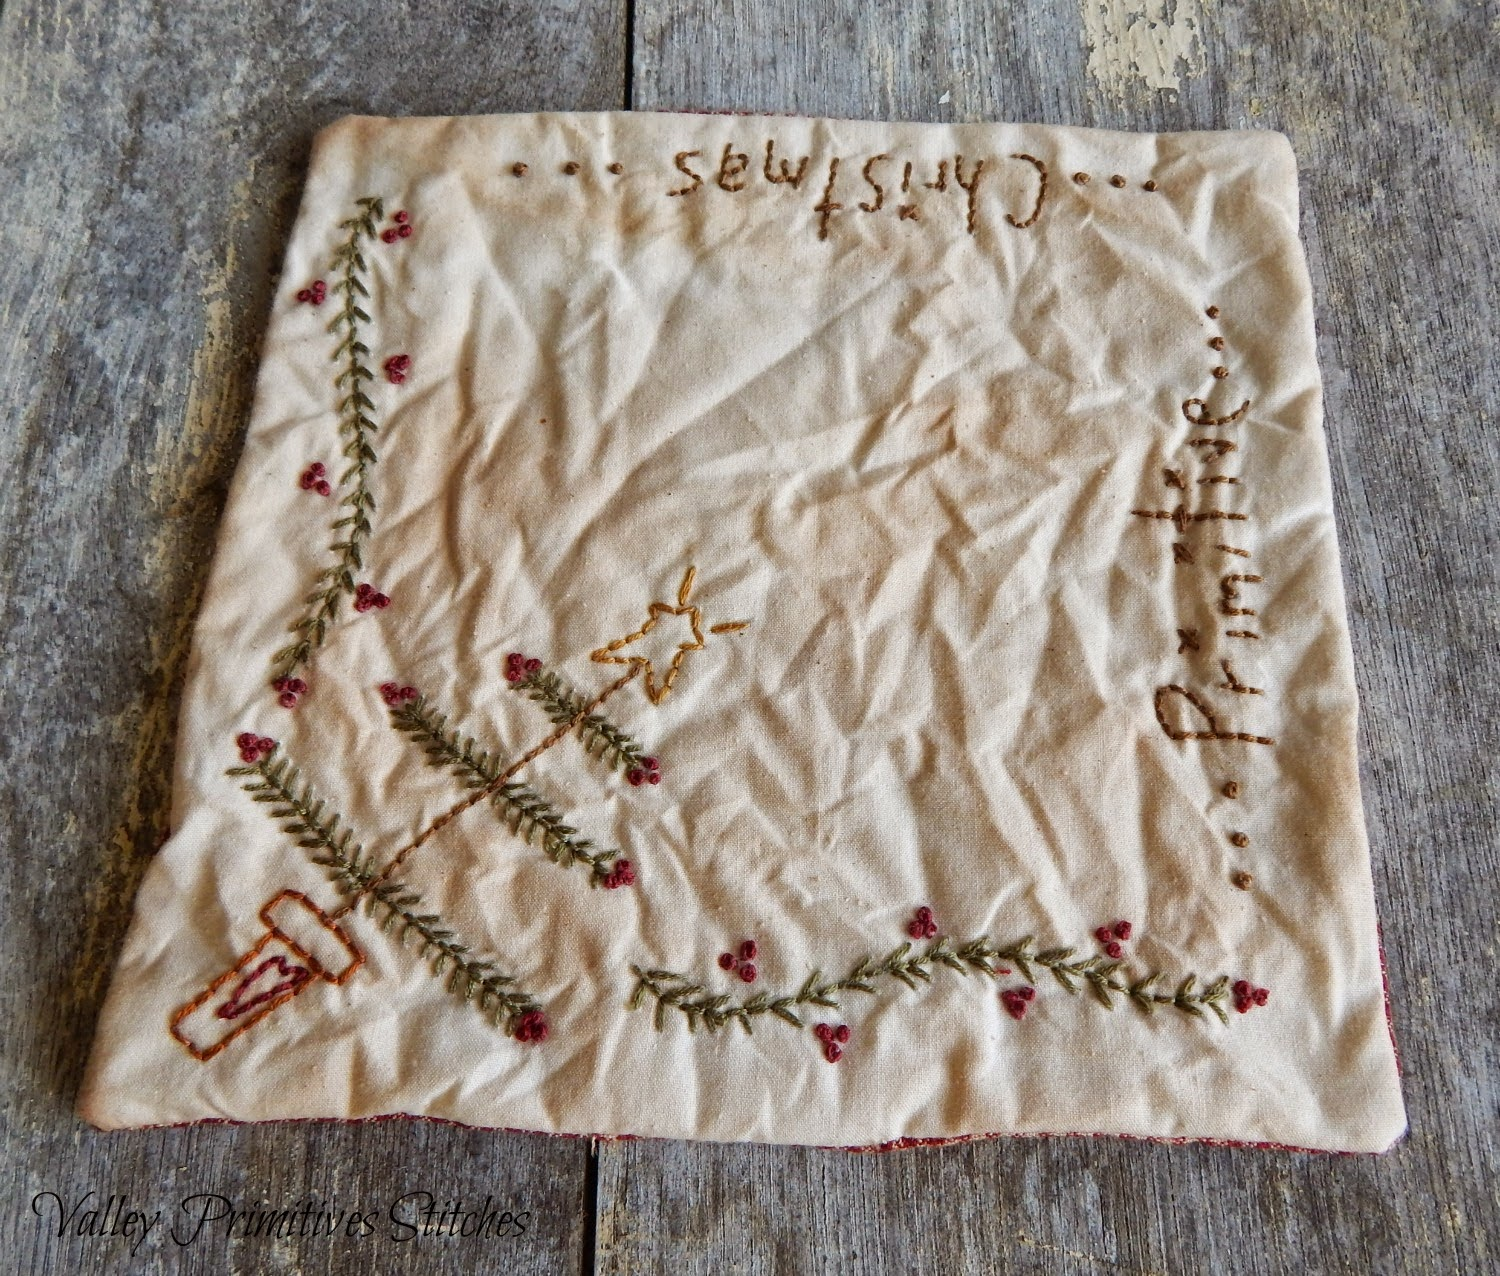 Valley Primitive Stitches